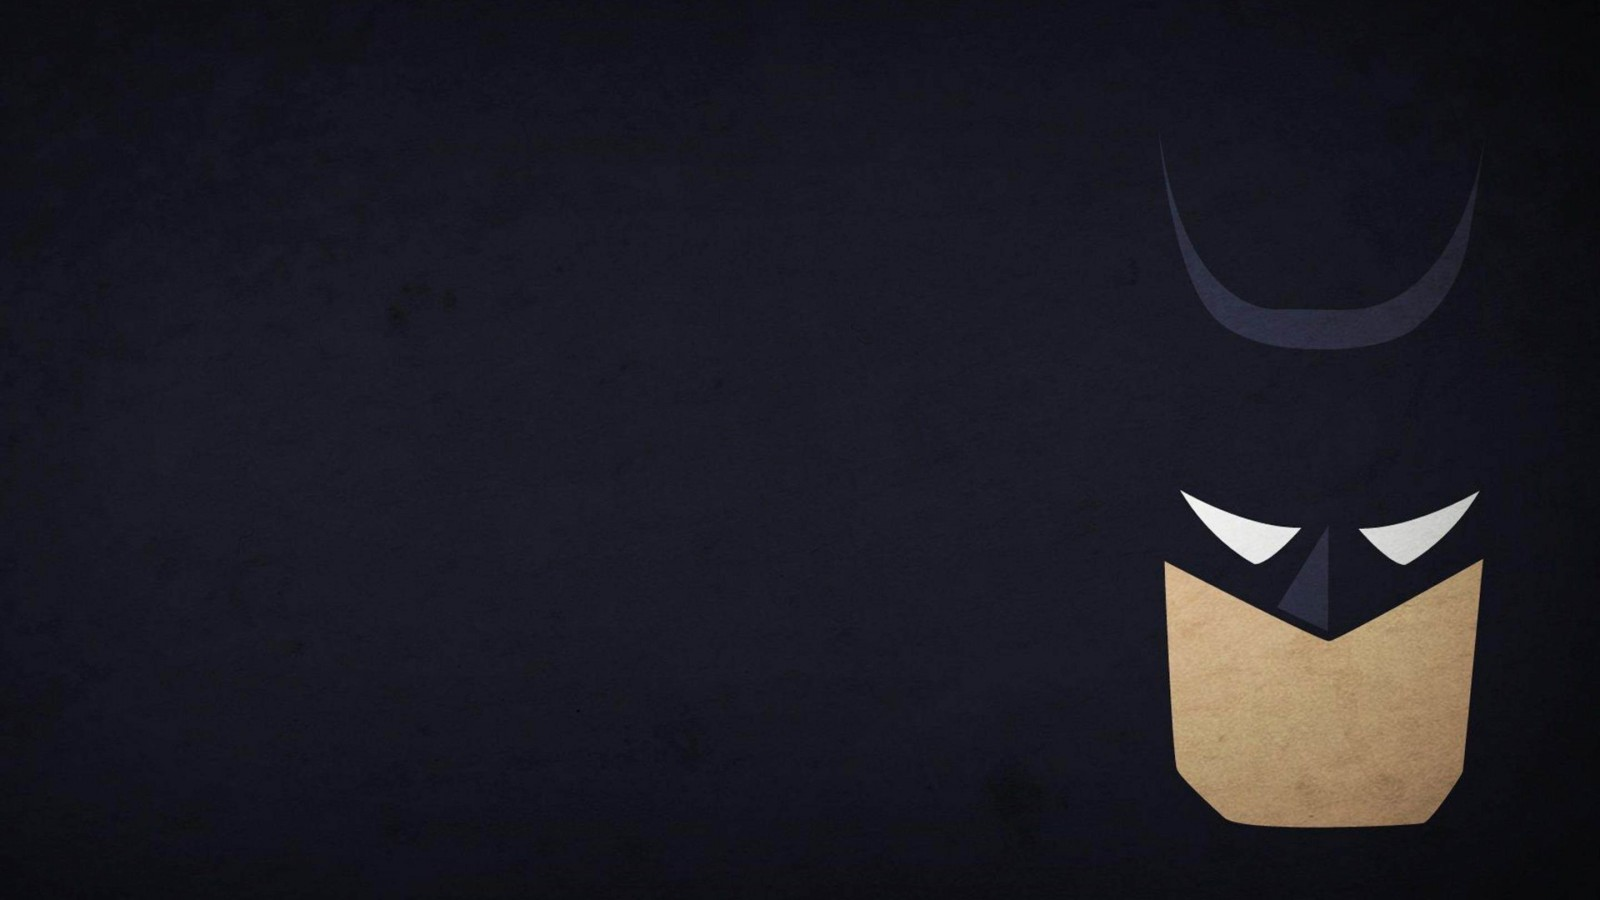 Batman Artwork Wallpaper for Desktop 1600x900